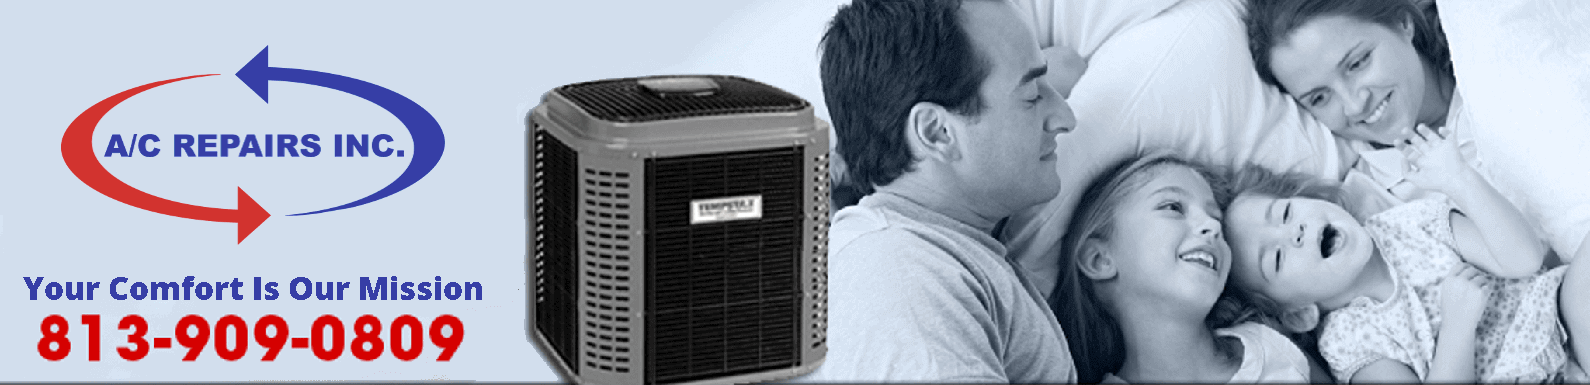 Affordable AC Repair Tampa